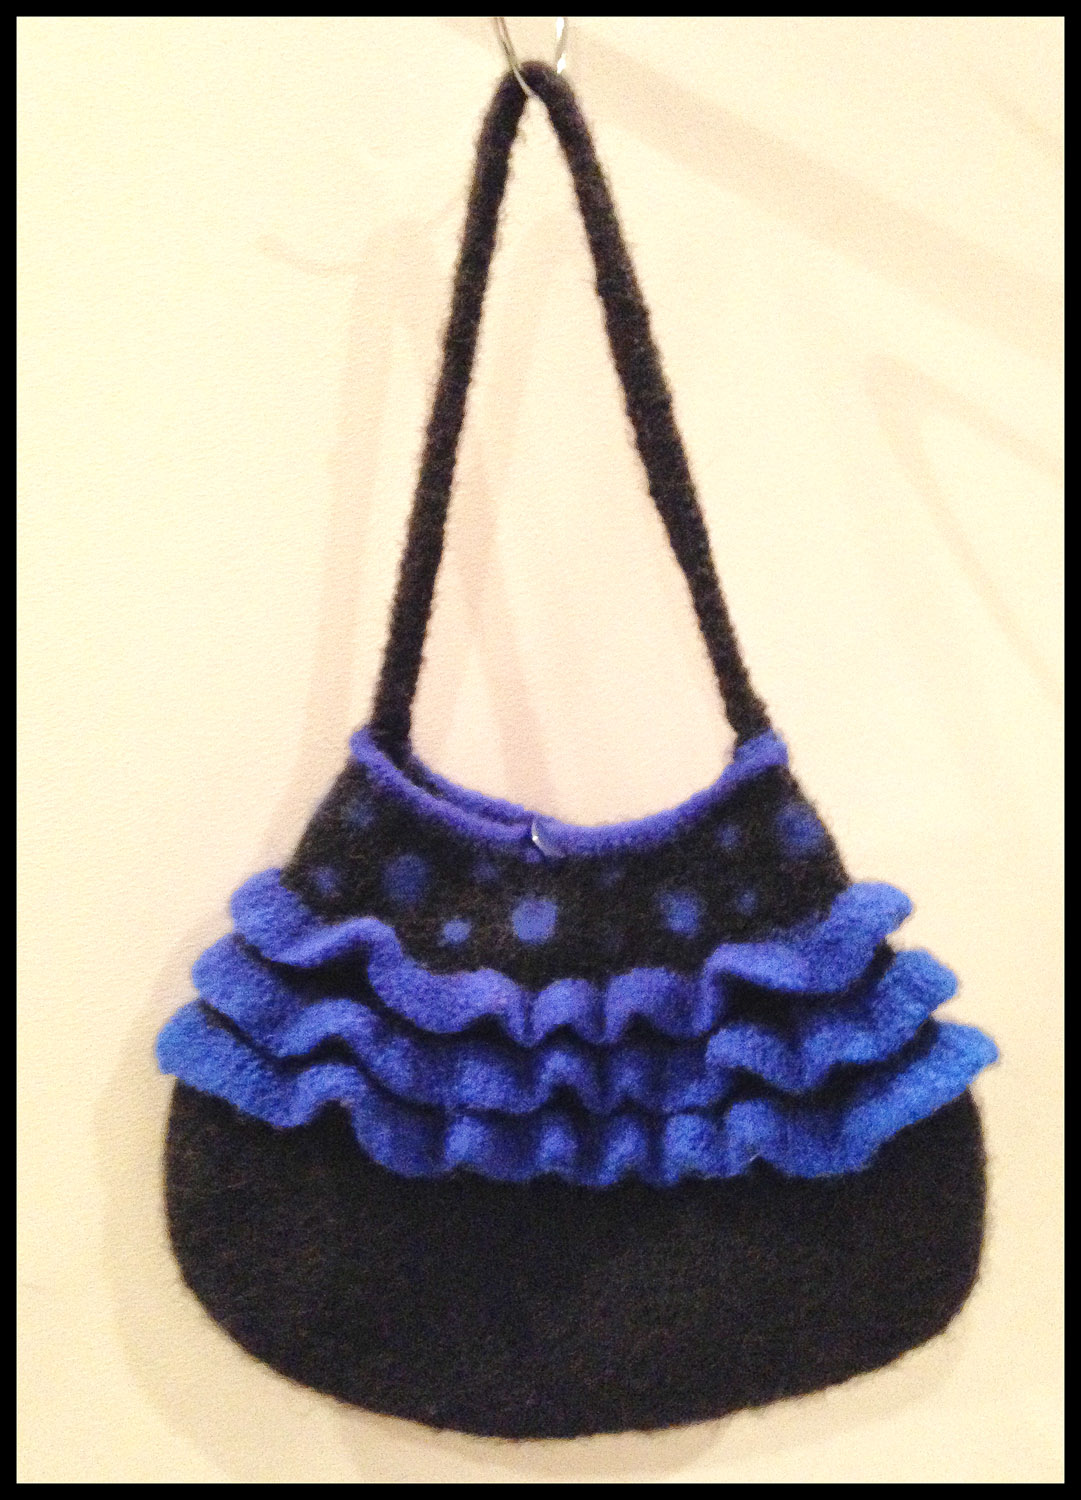 A bag that Telena has completed in the past to show us what she's working towards.